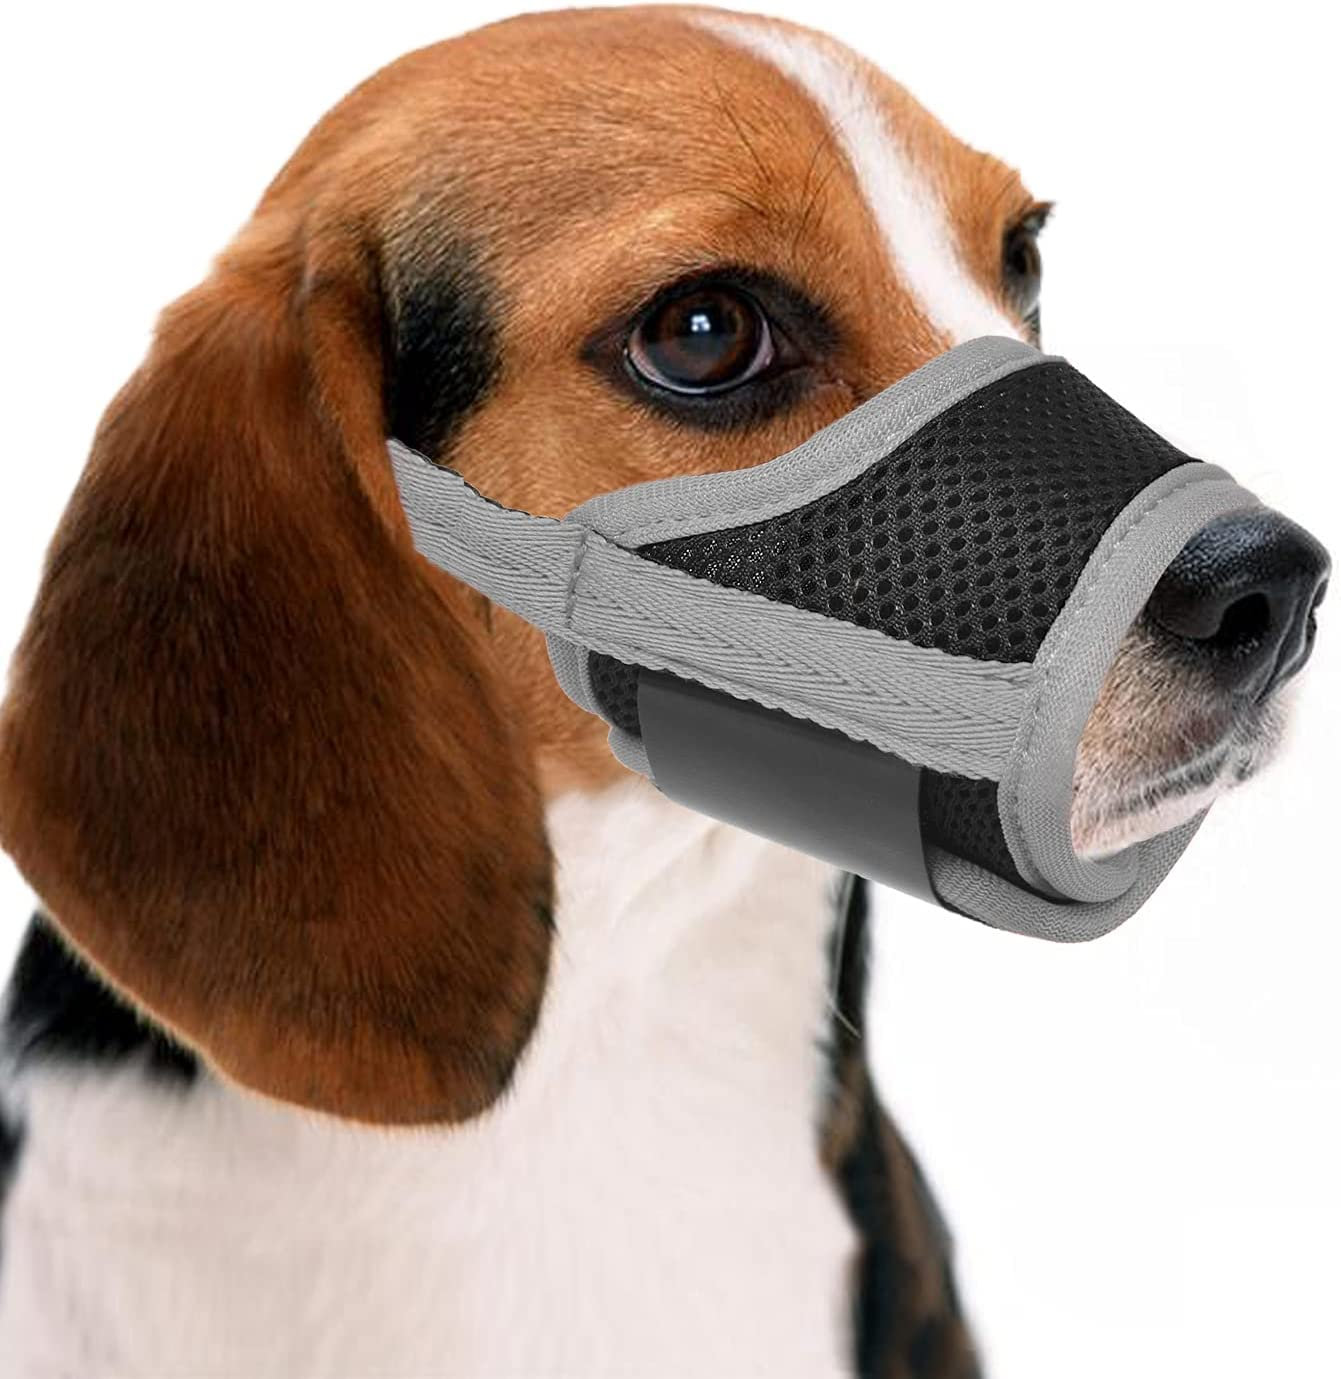 Crazy Felix Bombing new work Dog Muzzle Prevent Adjustable Now free shipping to Biting